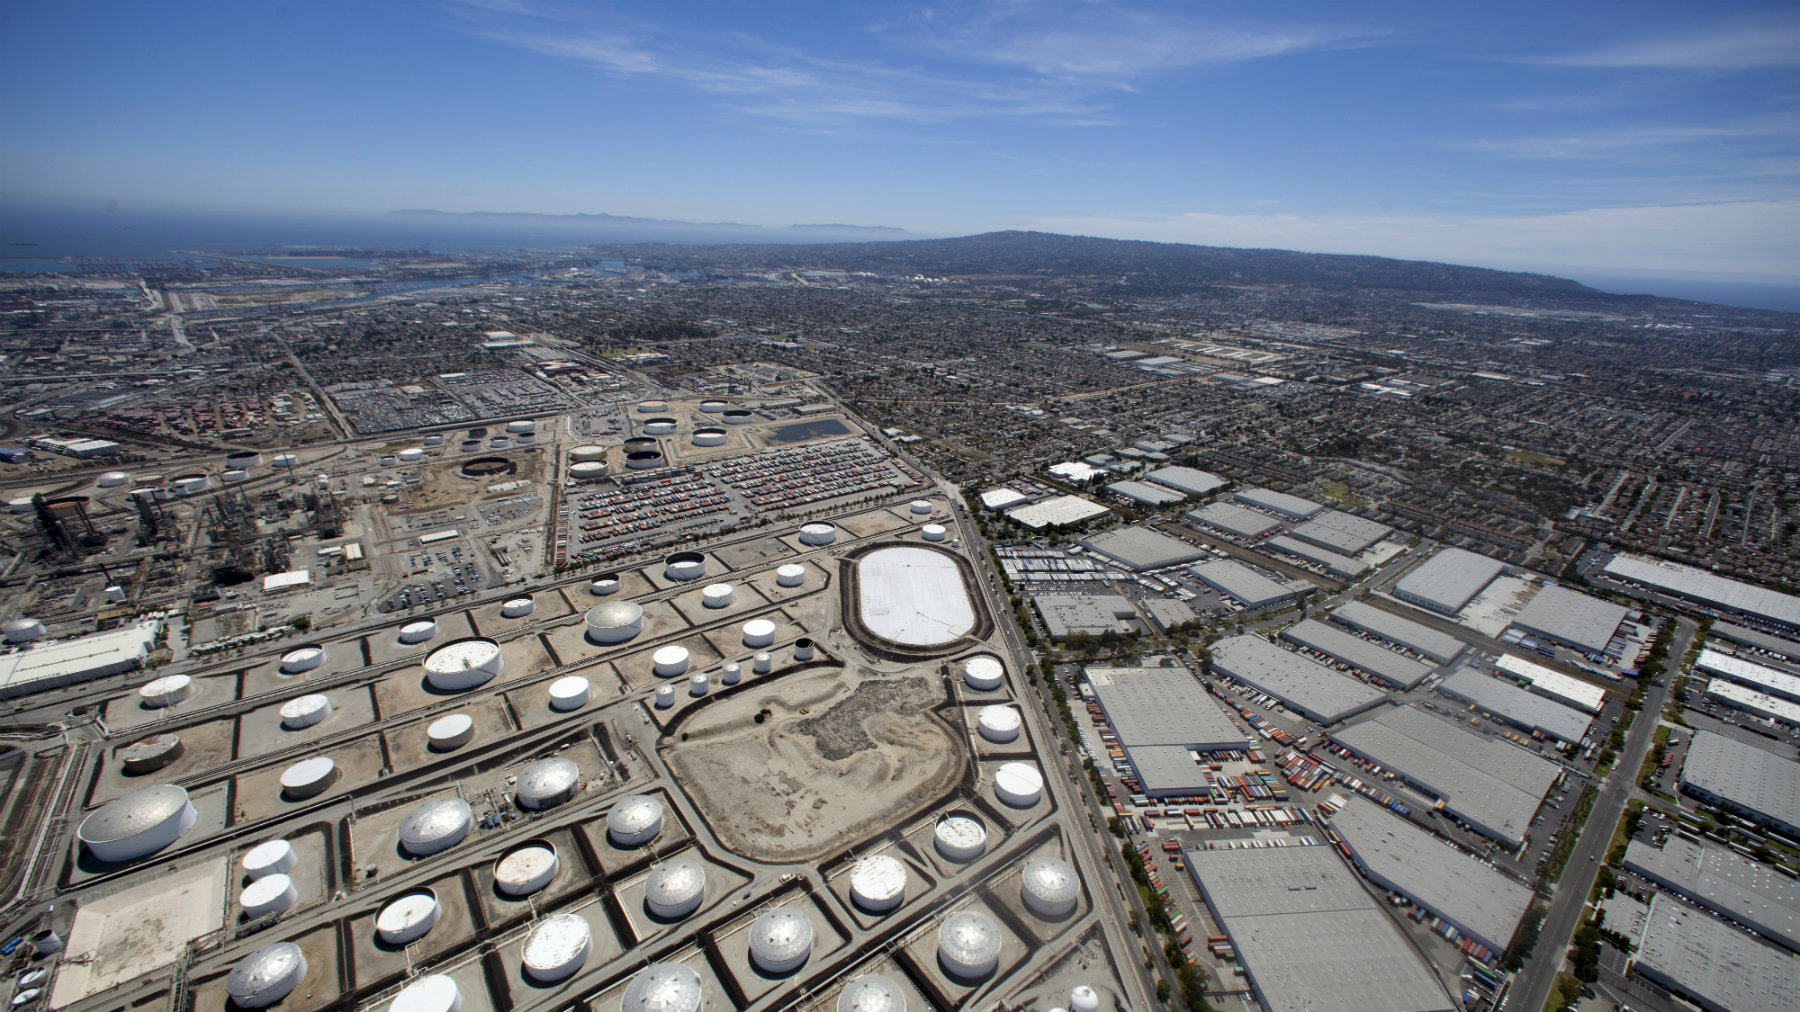 An oil refinery is viewed from the air in Carson, California.